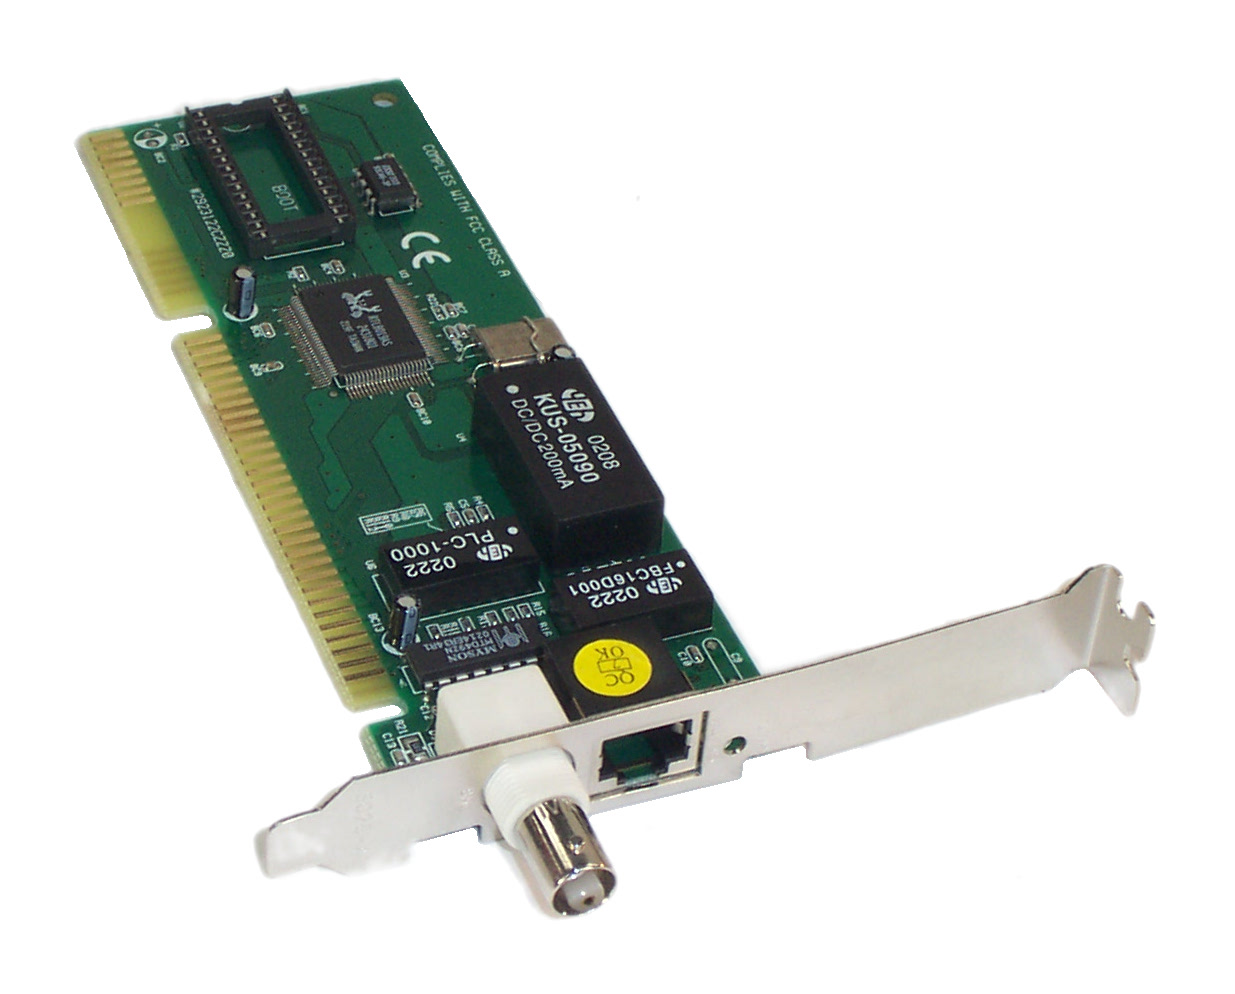 Preparing An Invoice Word  Bit Nec M Isa Ethernet Adapter For Basetrj Or  Google Invoice Templates Excel with Itemized Invoice Excel Thumbnail   Express Invoice Invoicing Software Pdf